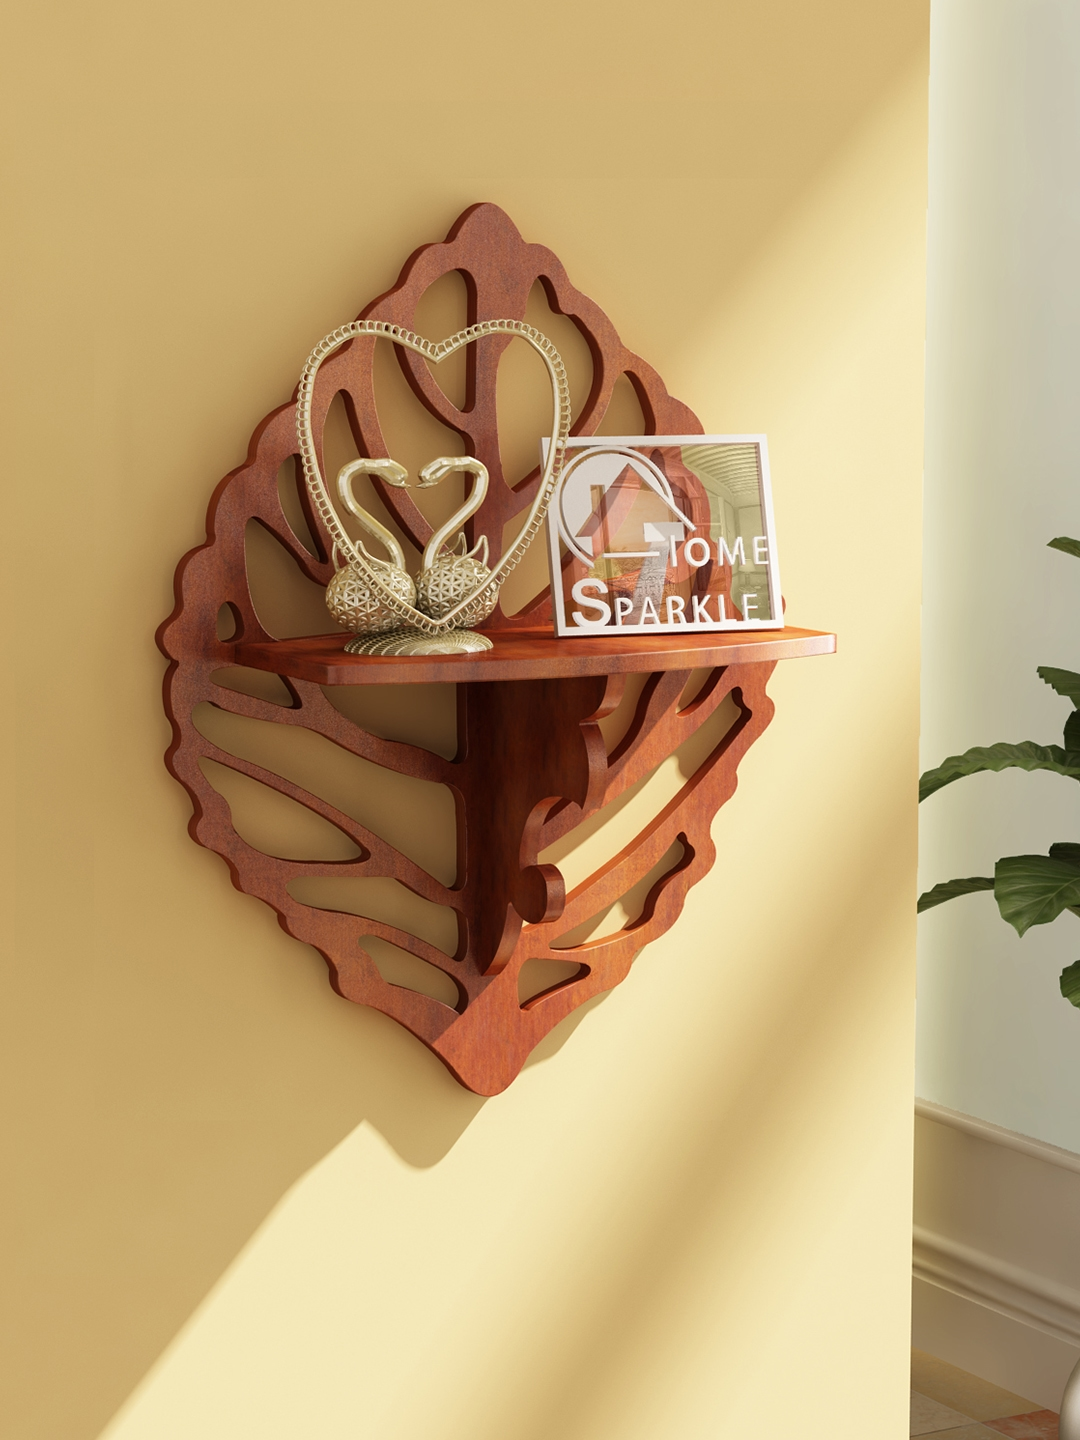 Home Sparkle Brown Carved Wall Shelf